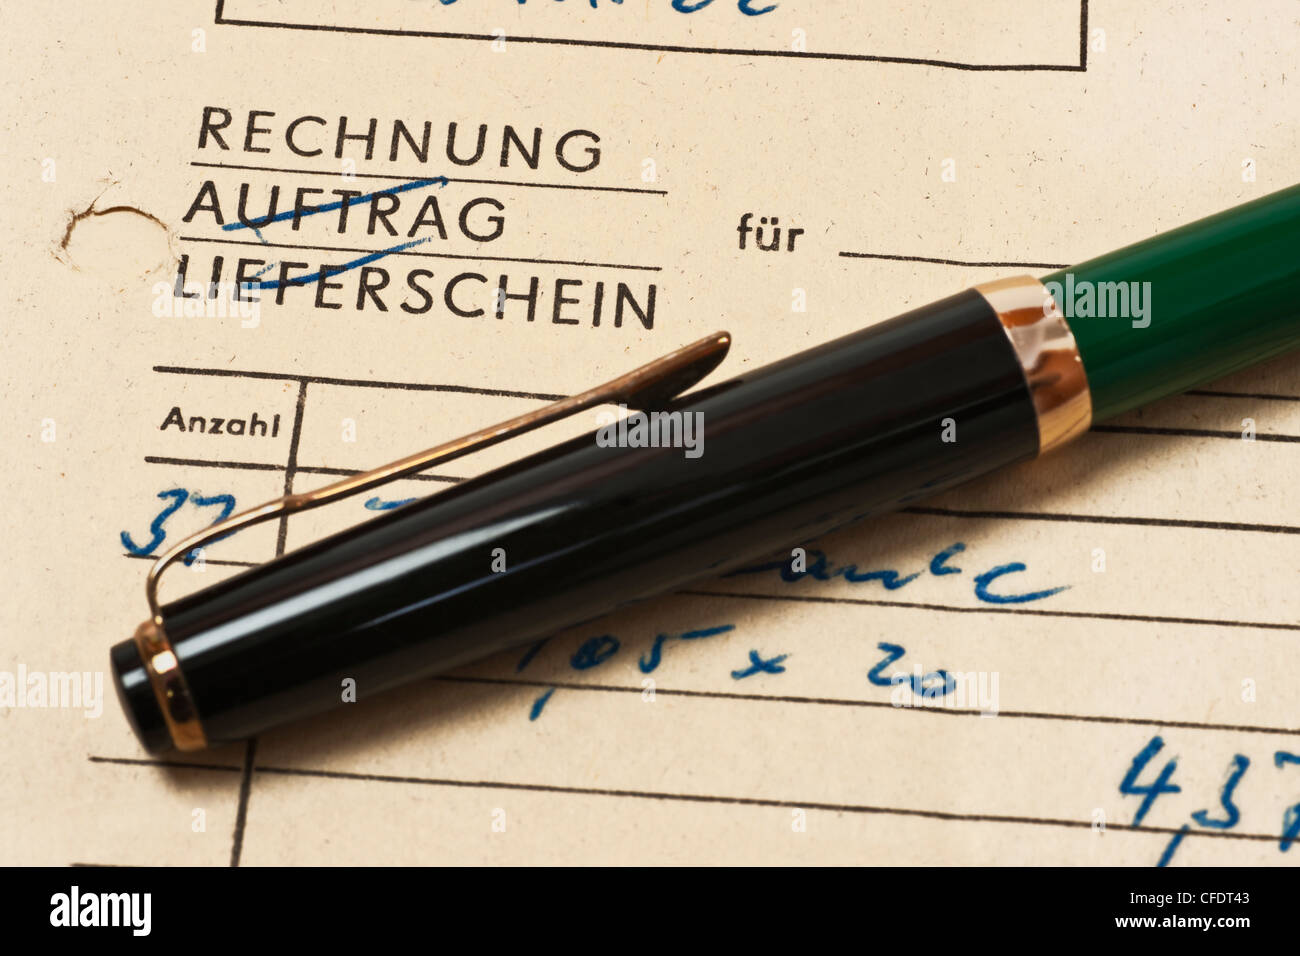 old invoice from 1970, German language and a fountain pen - Stock Image